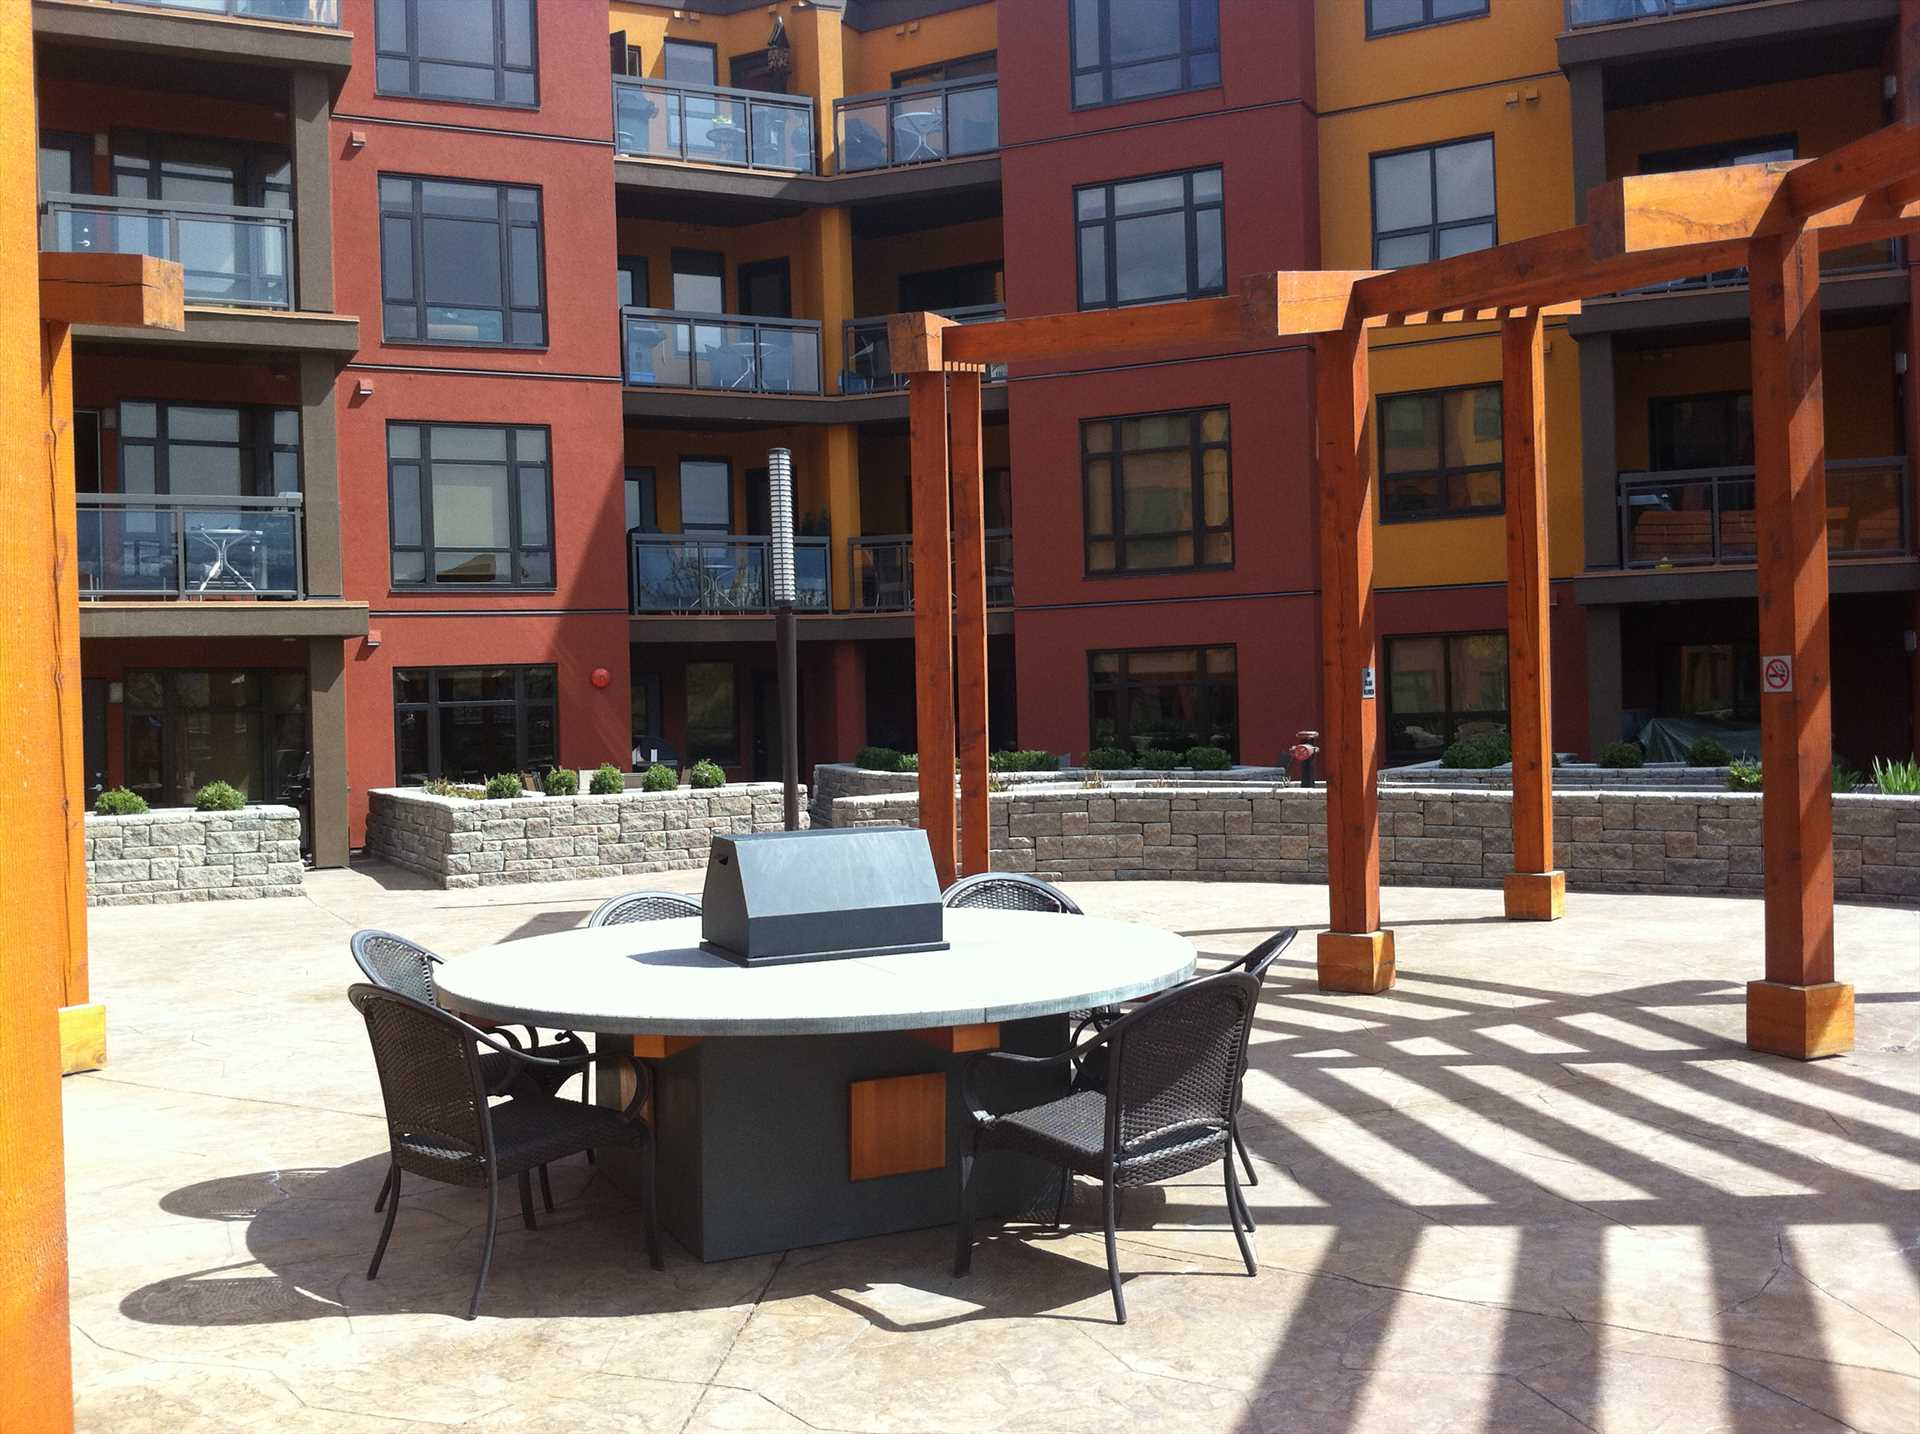 Fire Pit & Courtyards